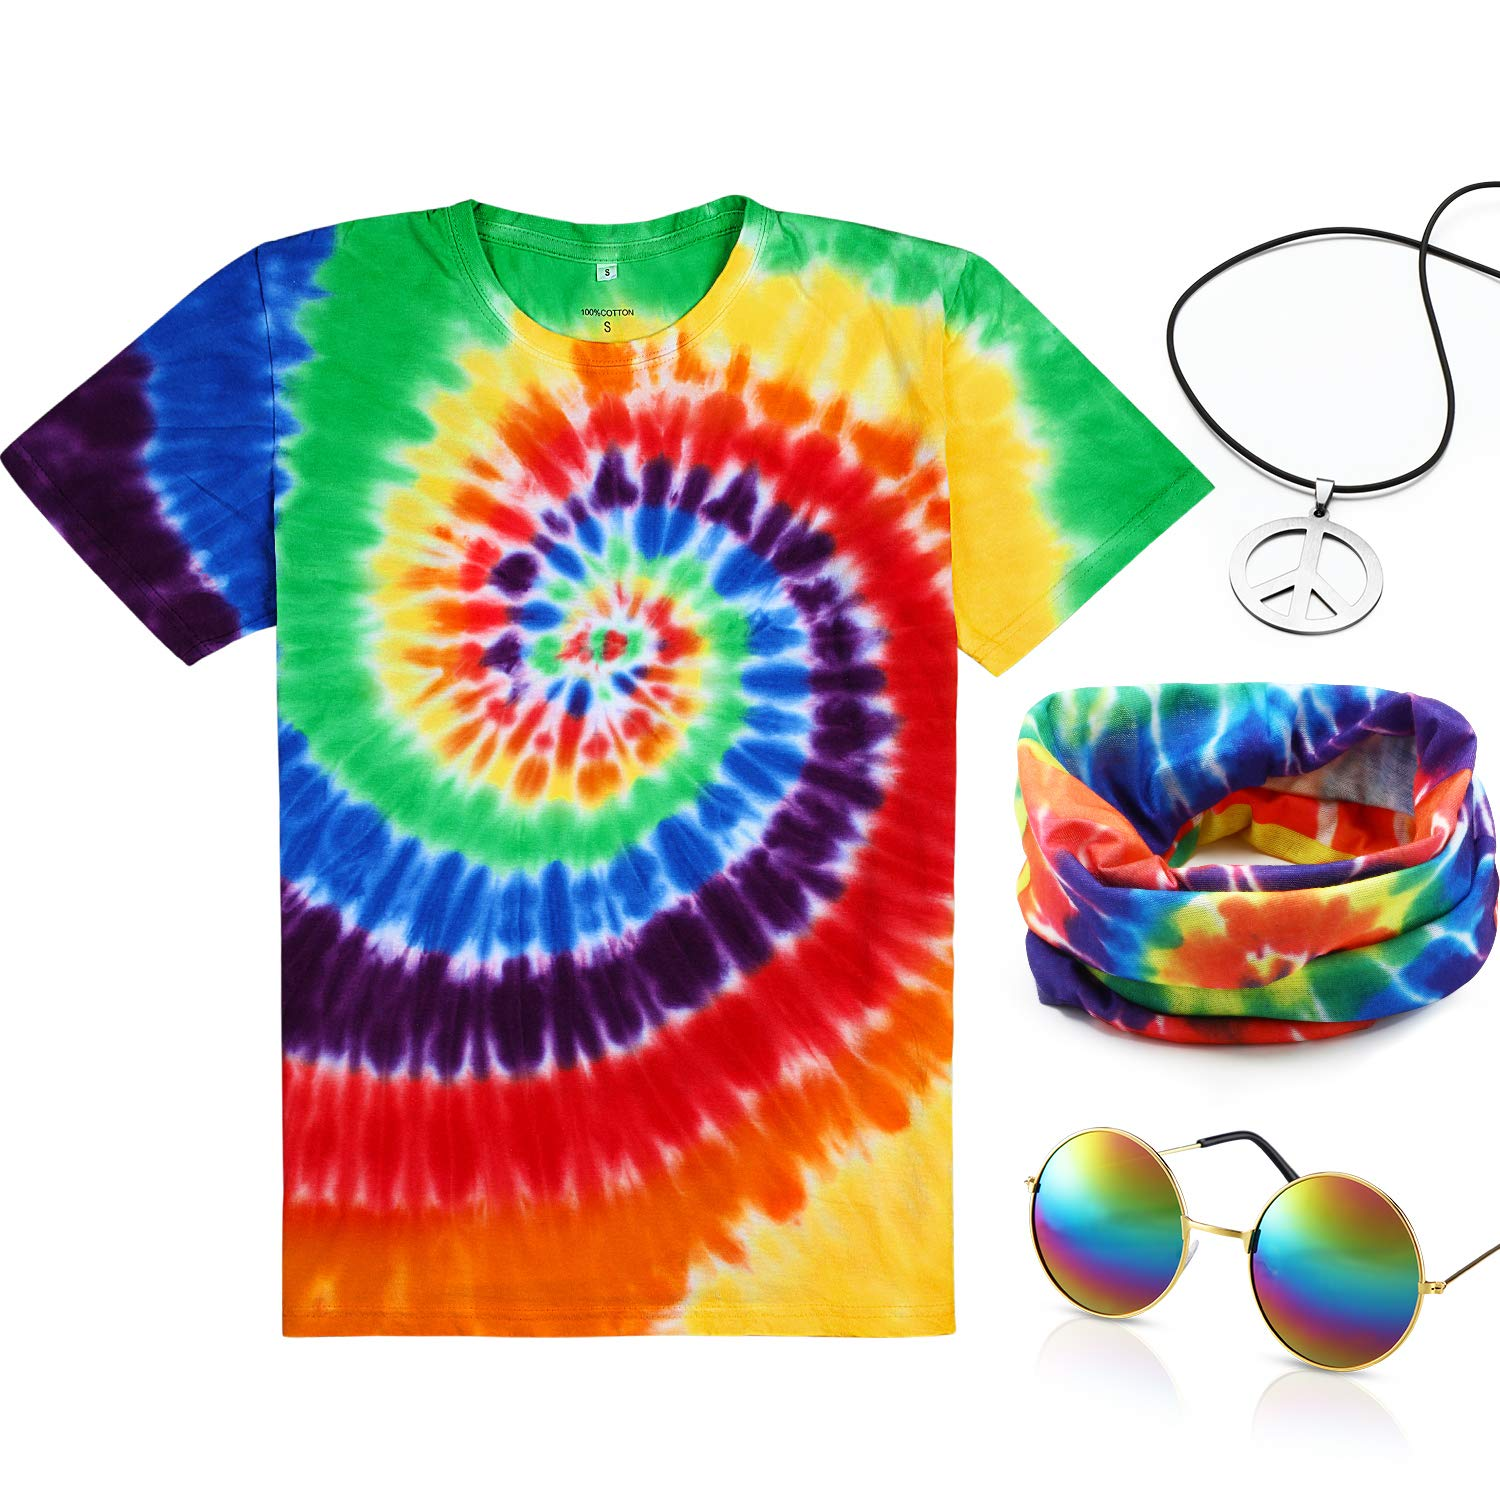 60s -70s  Men's Costumes : Hippie, Disco, Beatles 4 Pieces Hippie Costume Set Include Colorful Tie-Dye T-Shirt Peace Sign Necklace Headband and Sunglasses for Theme Parties $23.99 AT vintagedancer.com